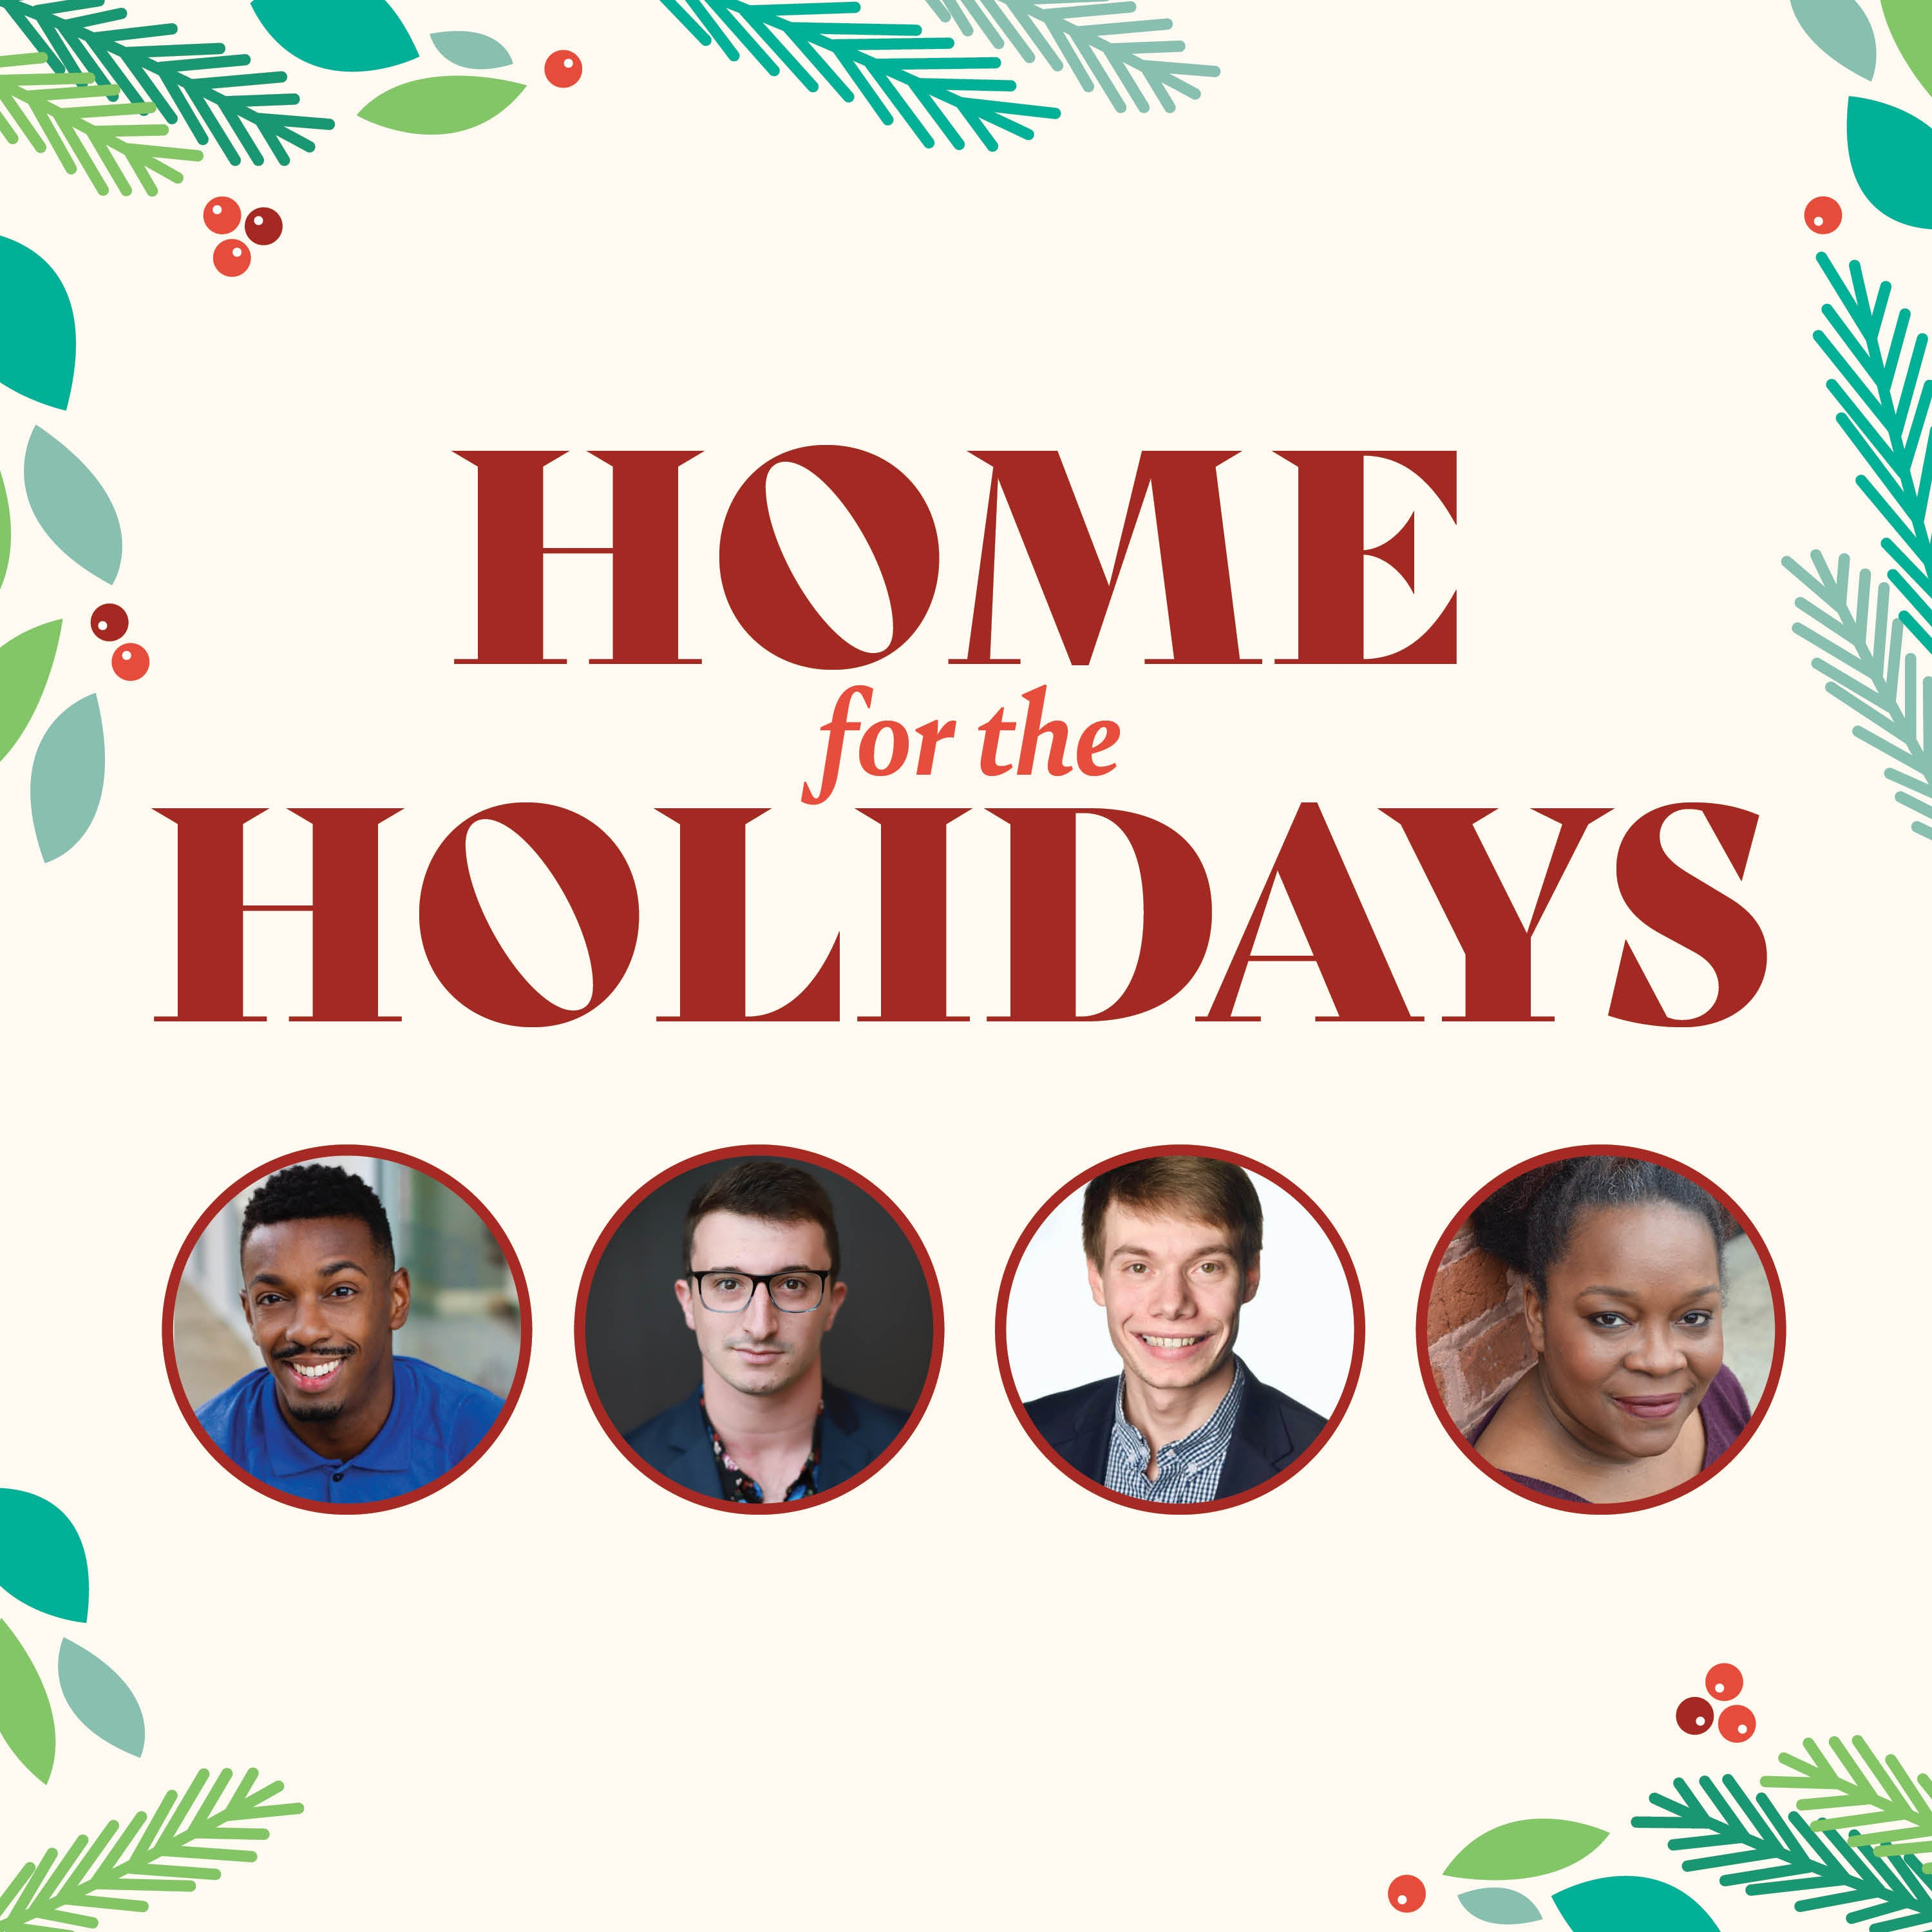 Home for the Holidays Panel